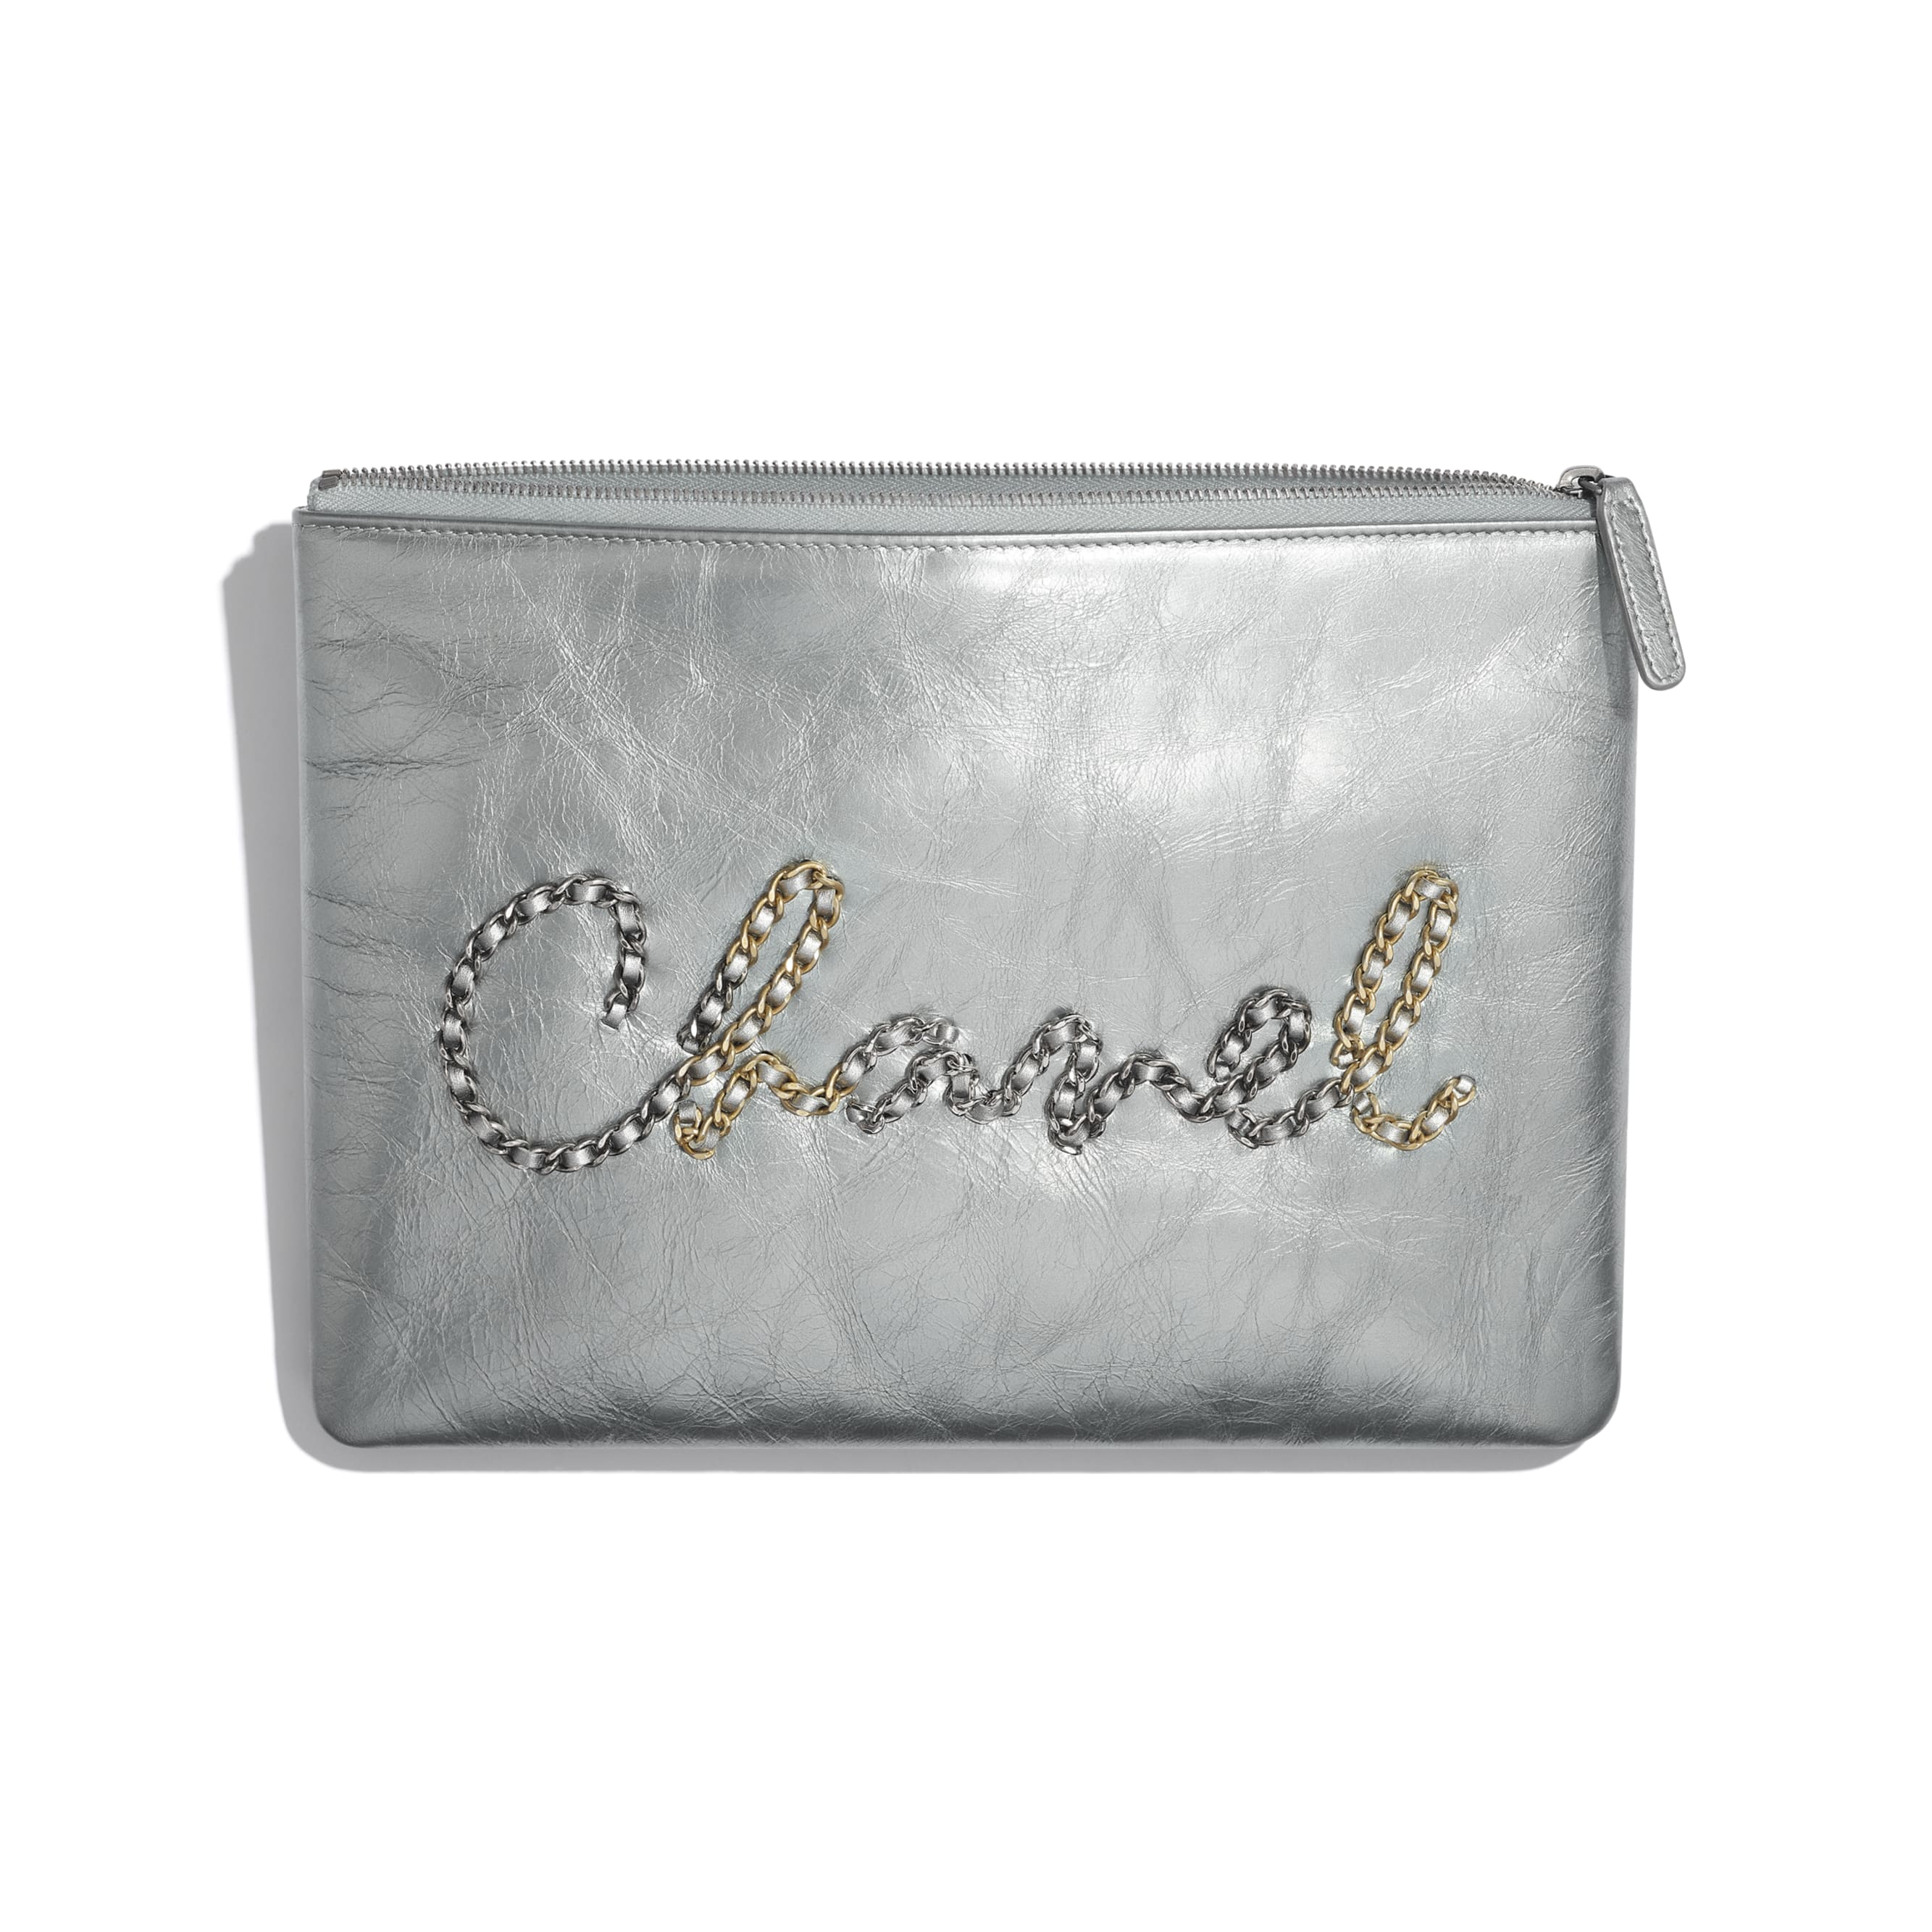 Pouch - Silver - Metallic Crumpled Calfskin, Gold-Tone, Silver-Tone & Ruthenium-Finish Metal - CHANEL - Other view - see standard sized version